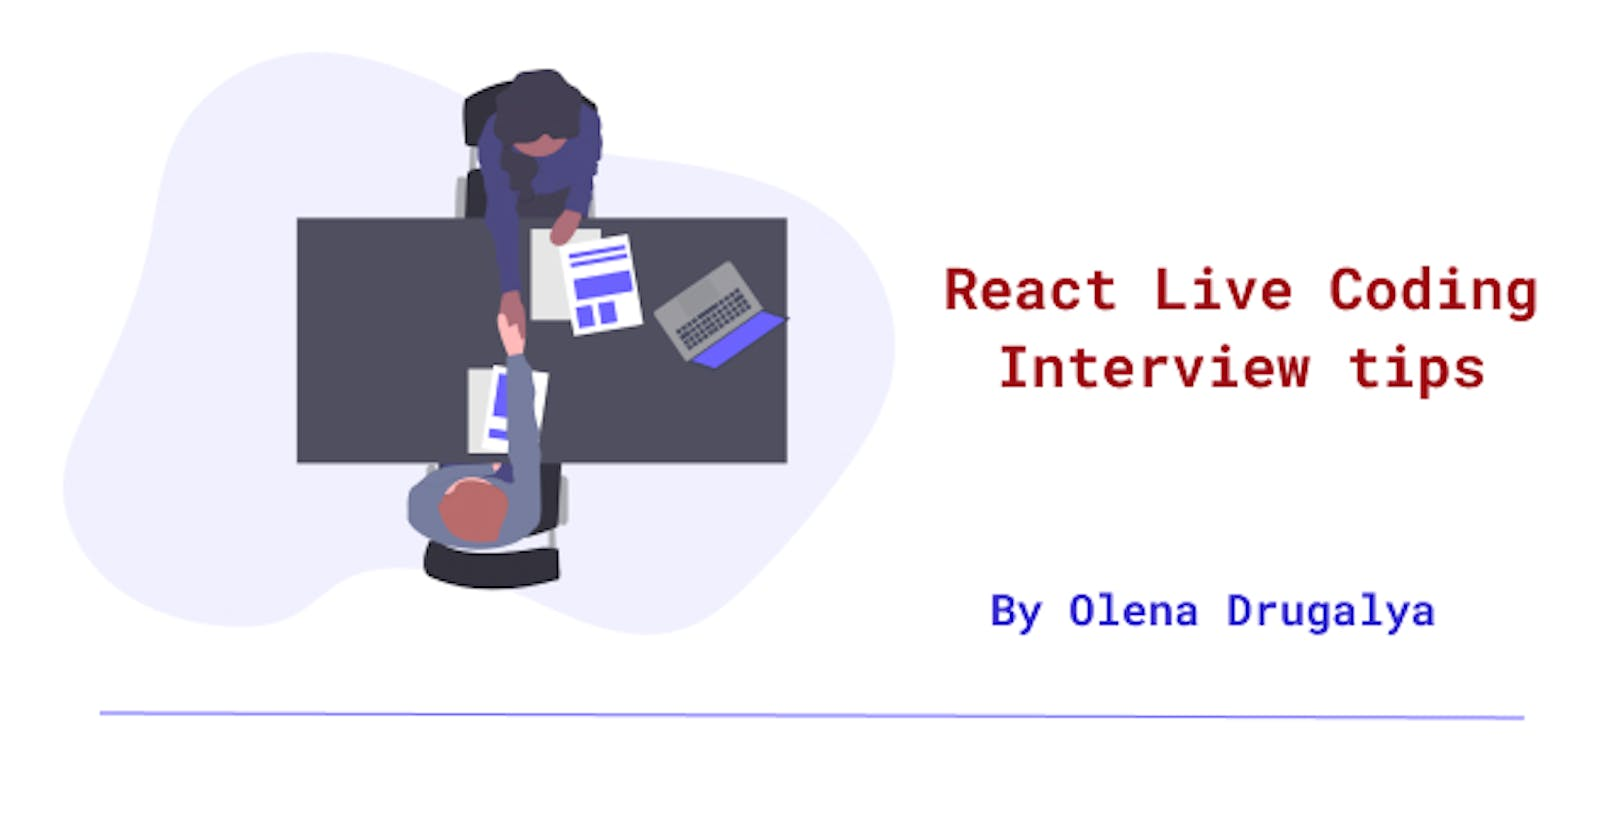 React Live Coding Interview Tips